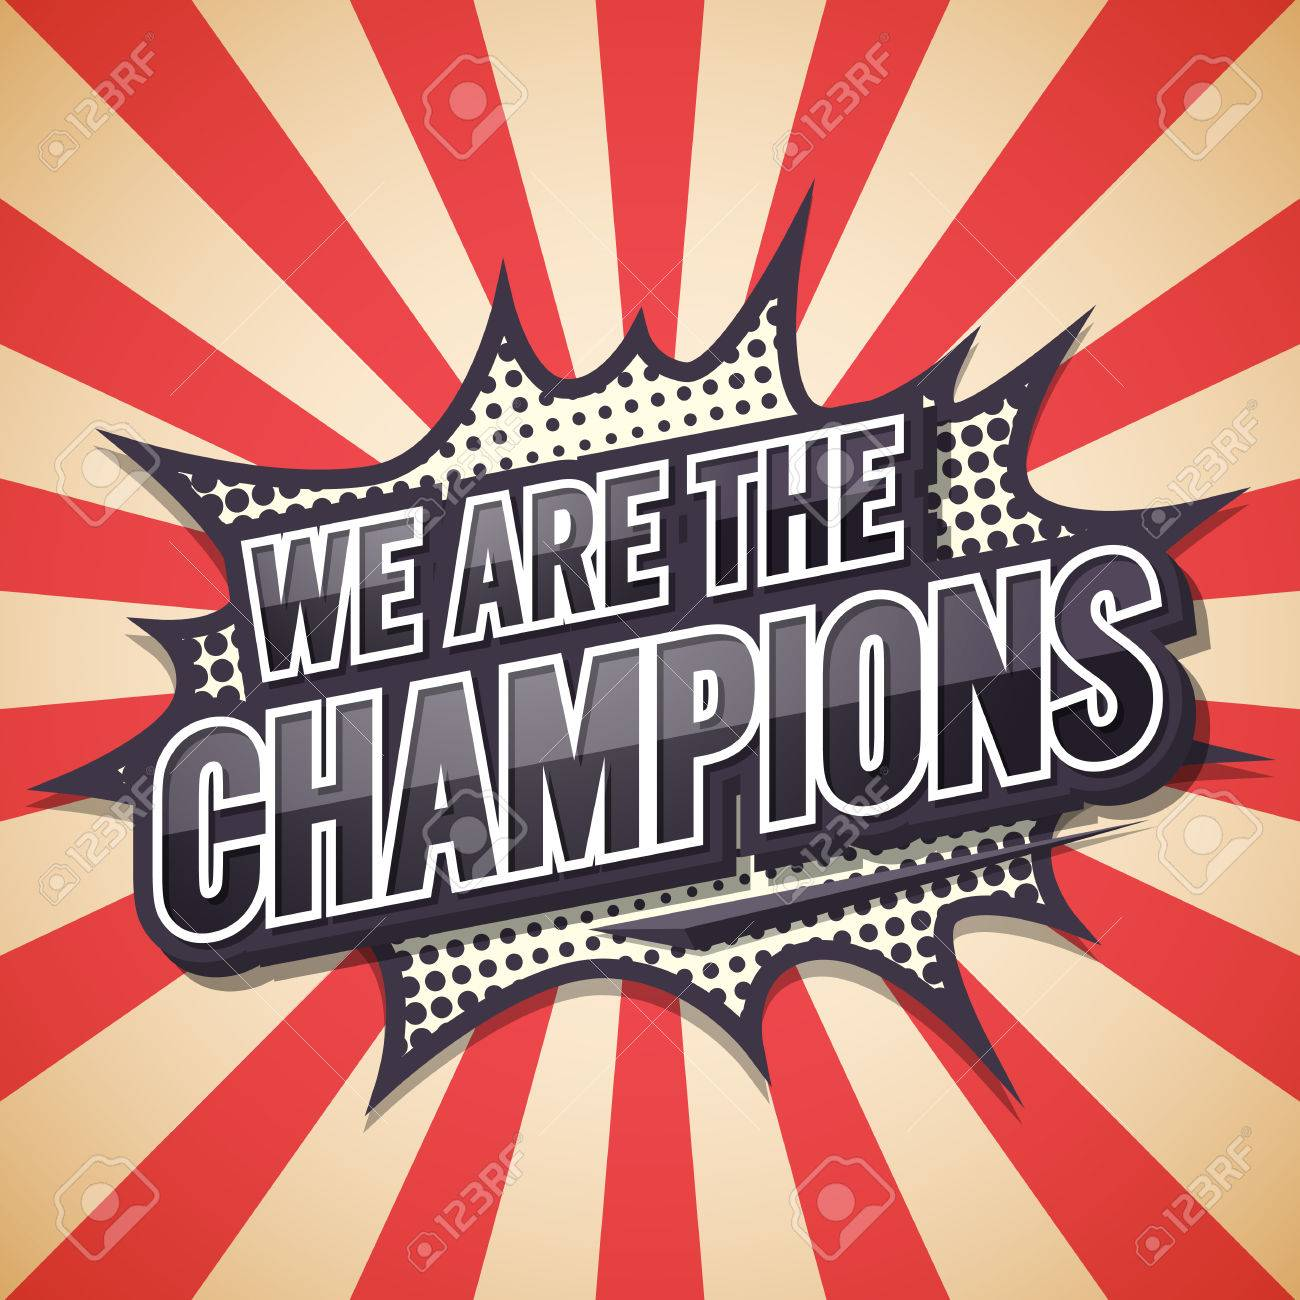 We Are The Champion. Poster Comic Speech Bubble.illustration. Royalty Free  Cliparts, Vectors, And Stock Illustration. Image 61036725.